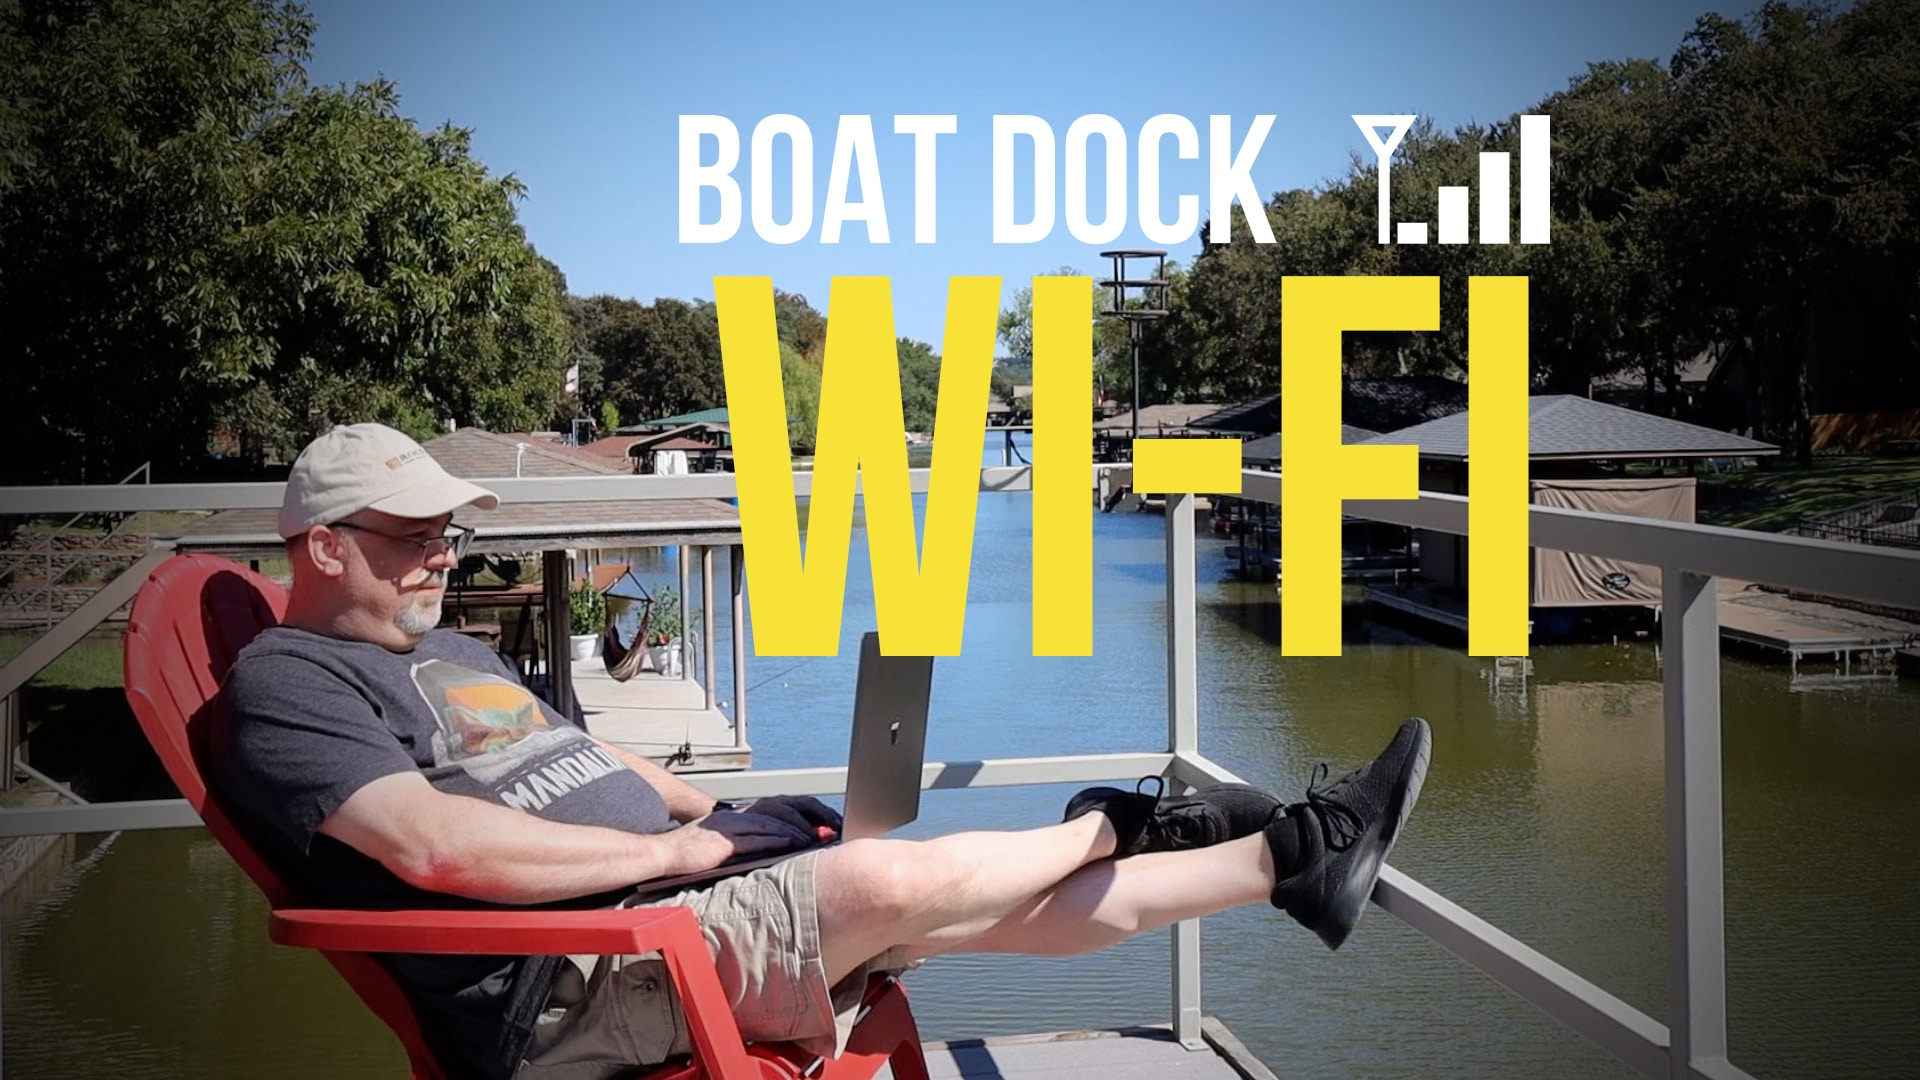 Wi-Fi at the Boat Dock